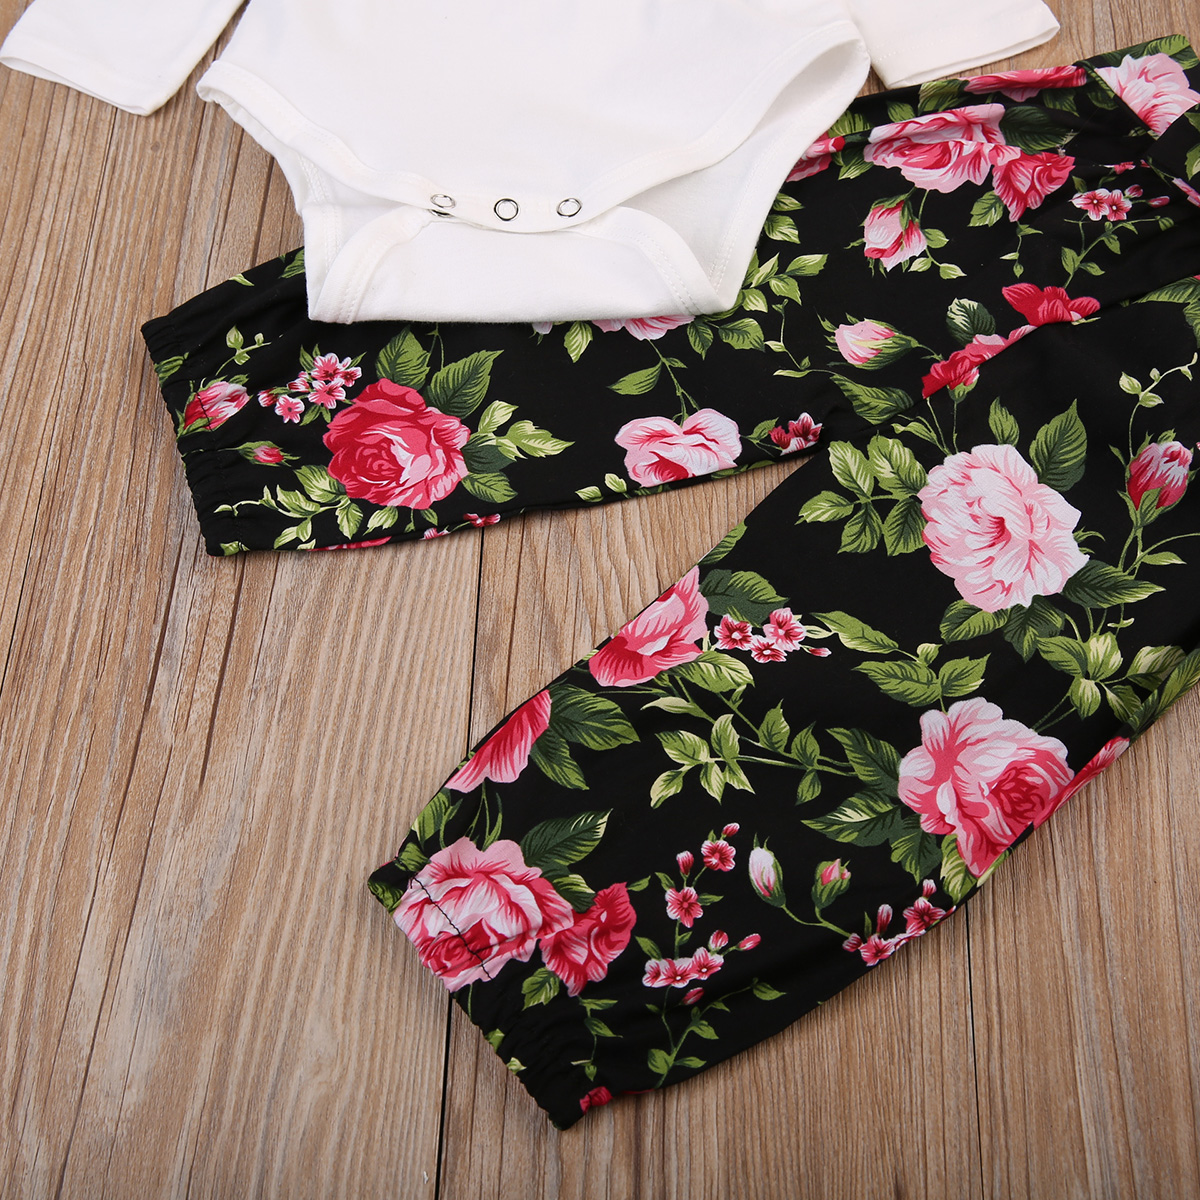 New Babies Girl 3 pcs Clothing Set Cute Newborn Baby Girls Cotton Bodysuit Tops Floral Pants Outfits Set Clothes 2019 in Clothing Sets from Mother Kids